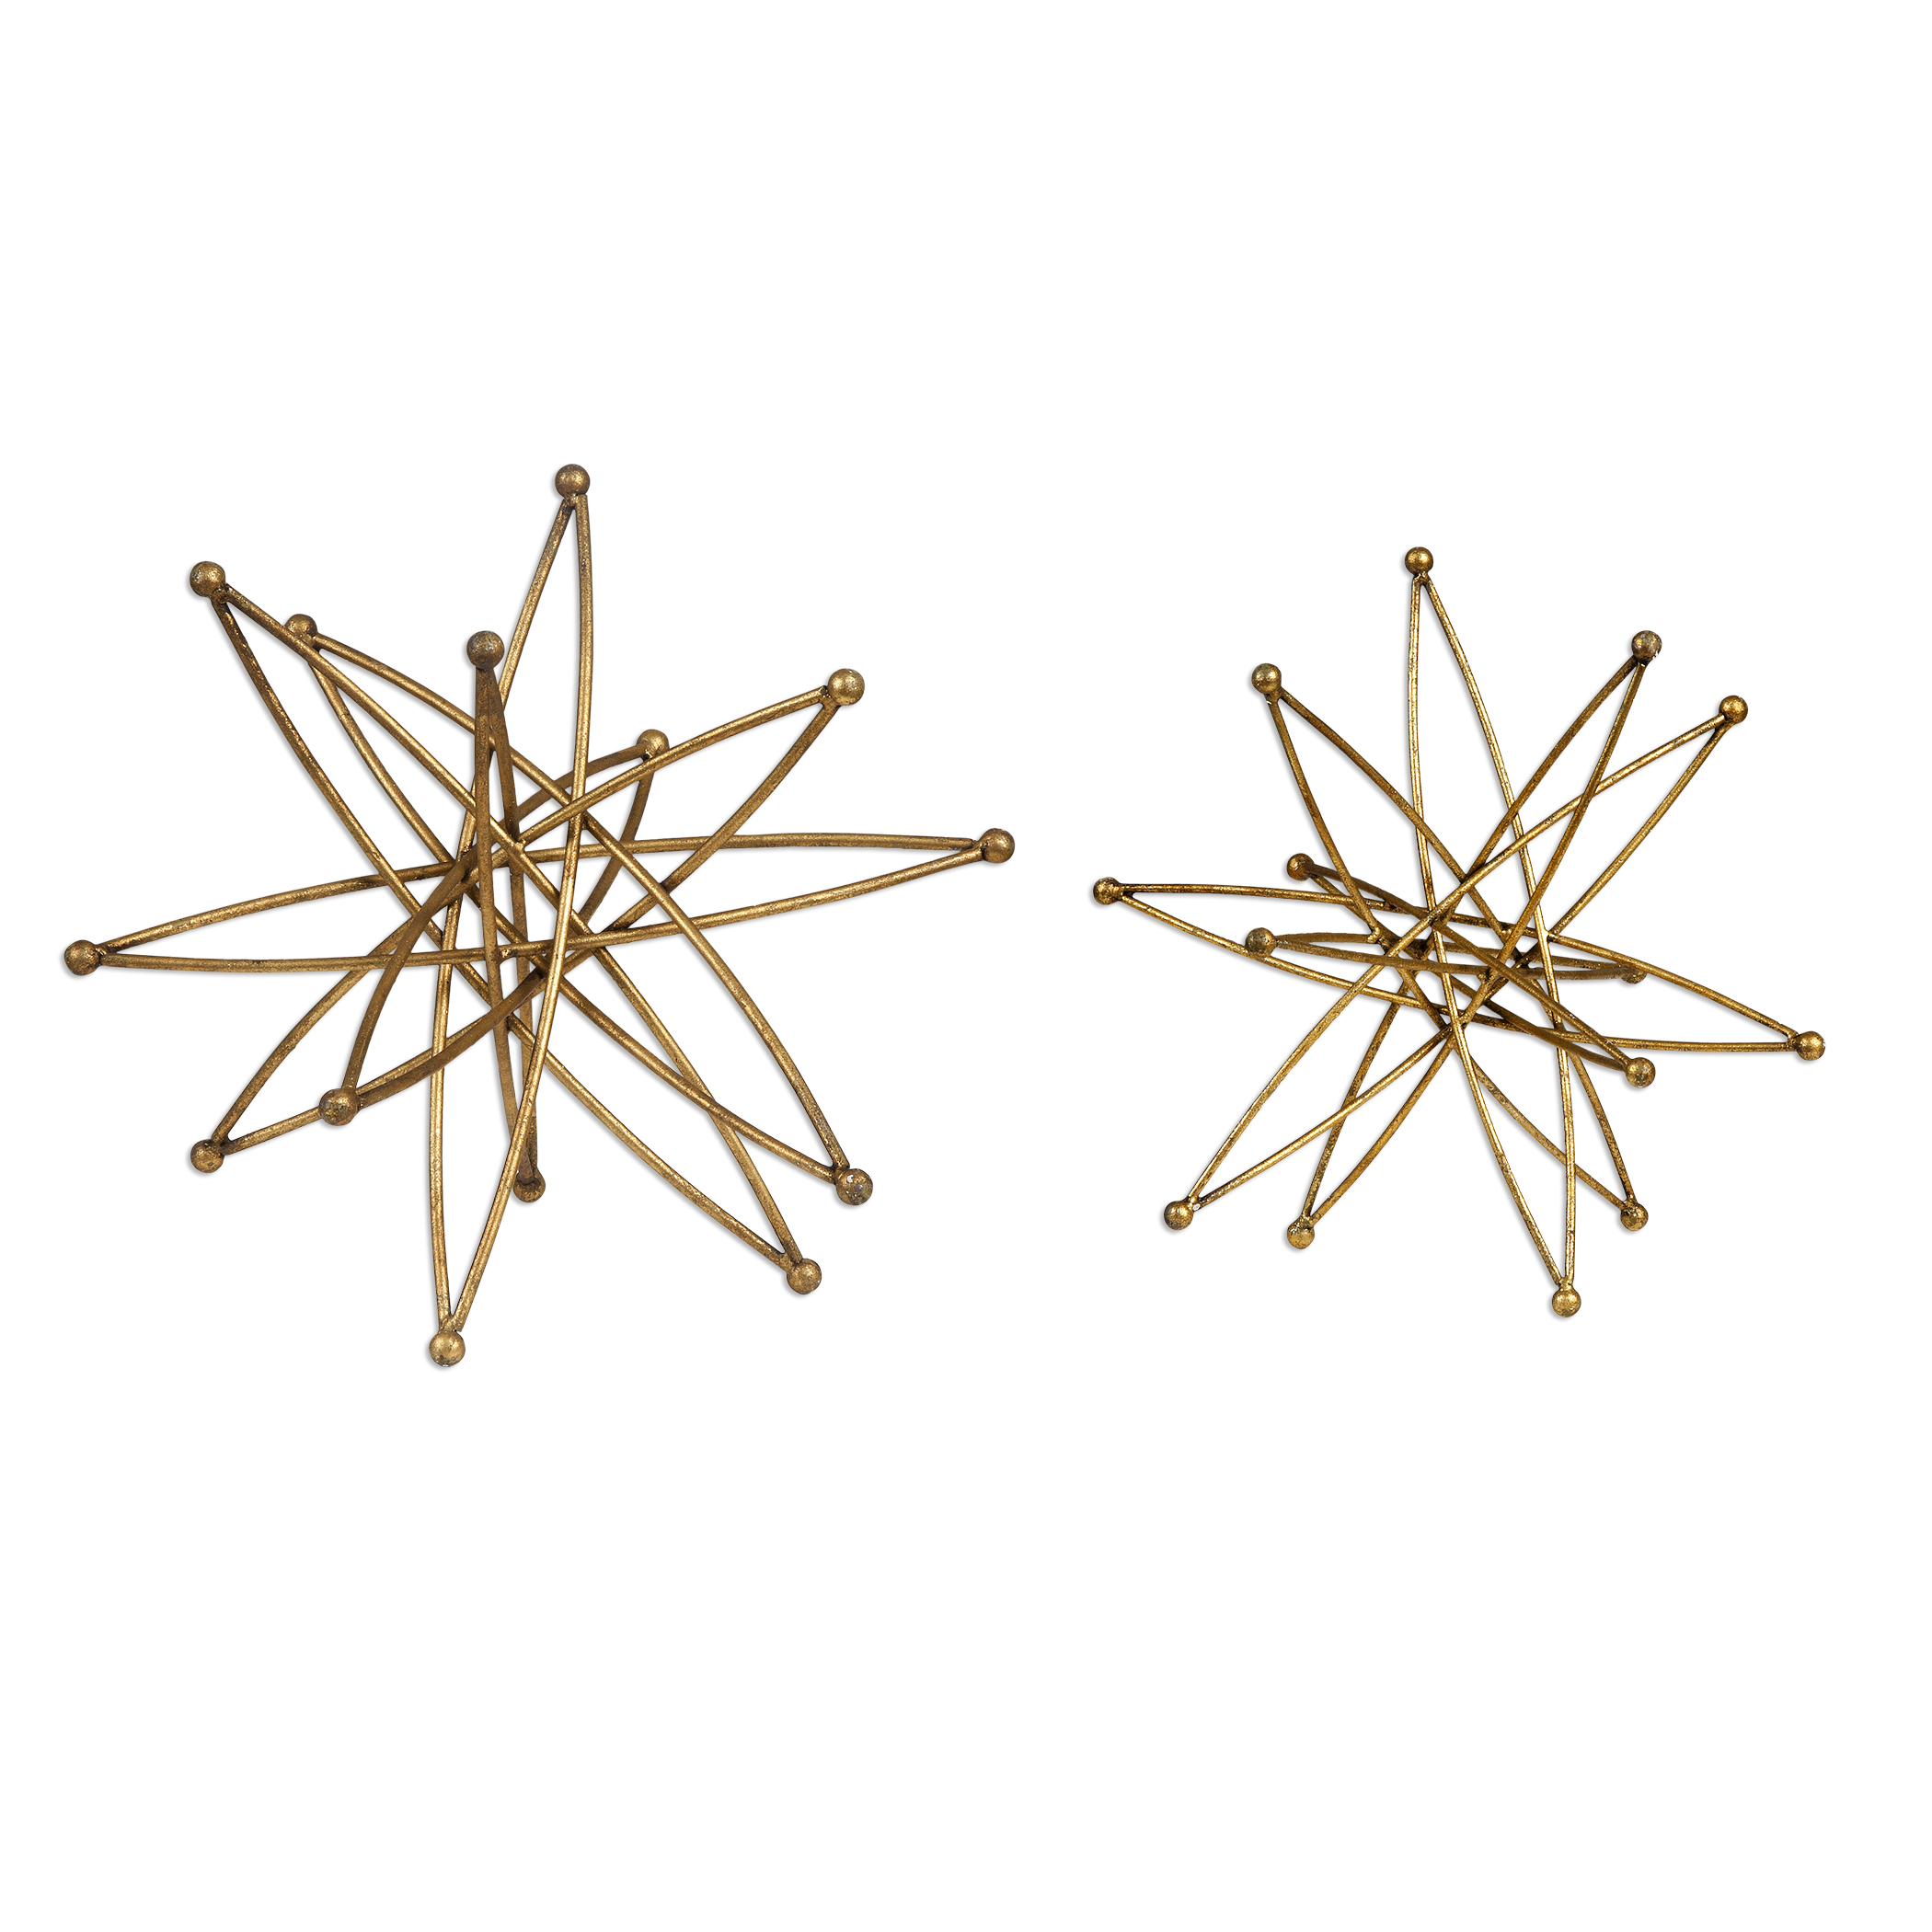 Accessories - Statues and Figurines Constanza Gold Atom Accessories, S/2 by Uttermost at Mueller Furniture